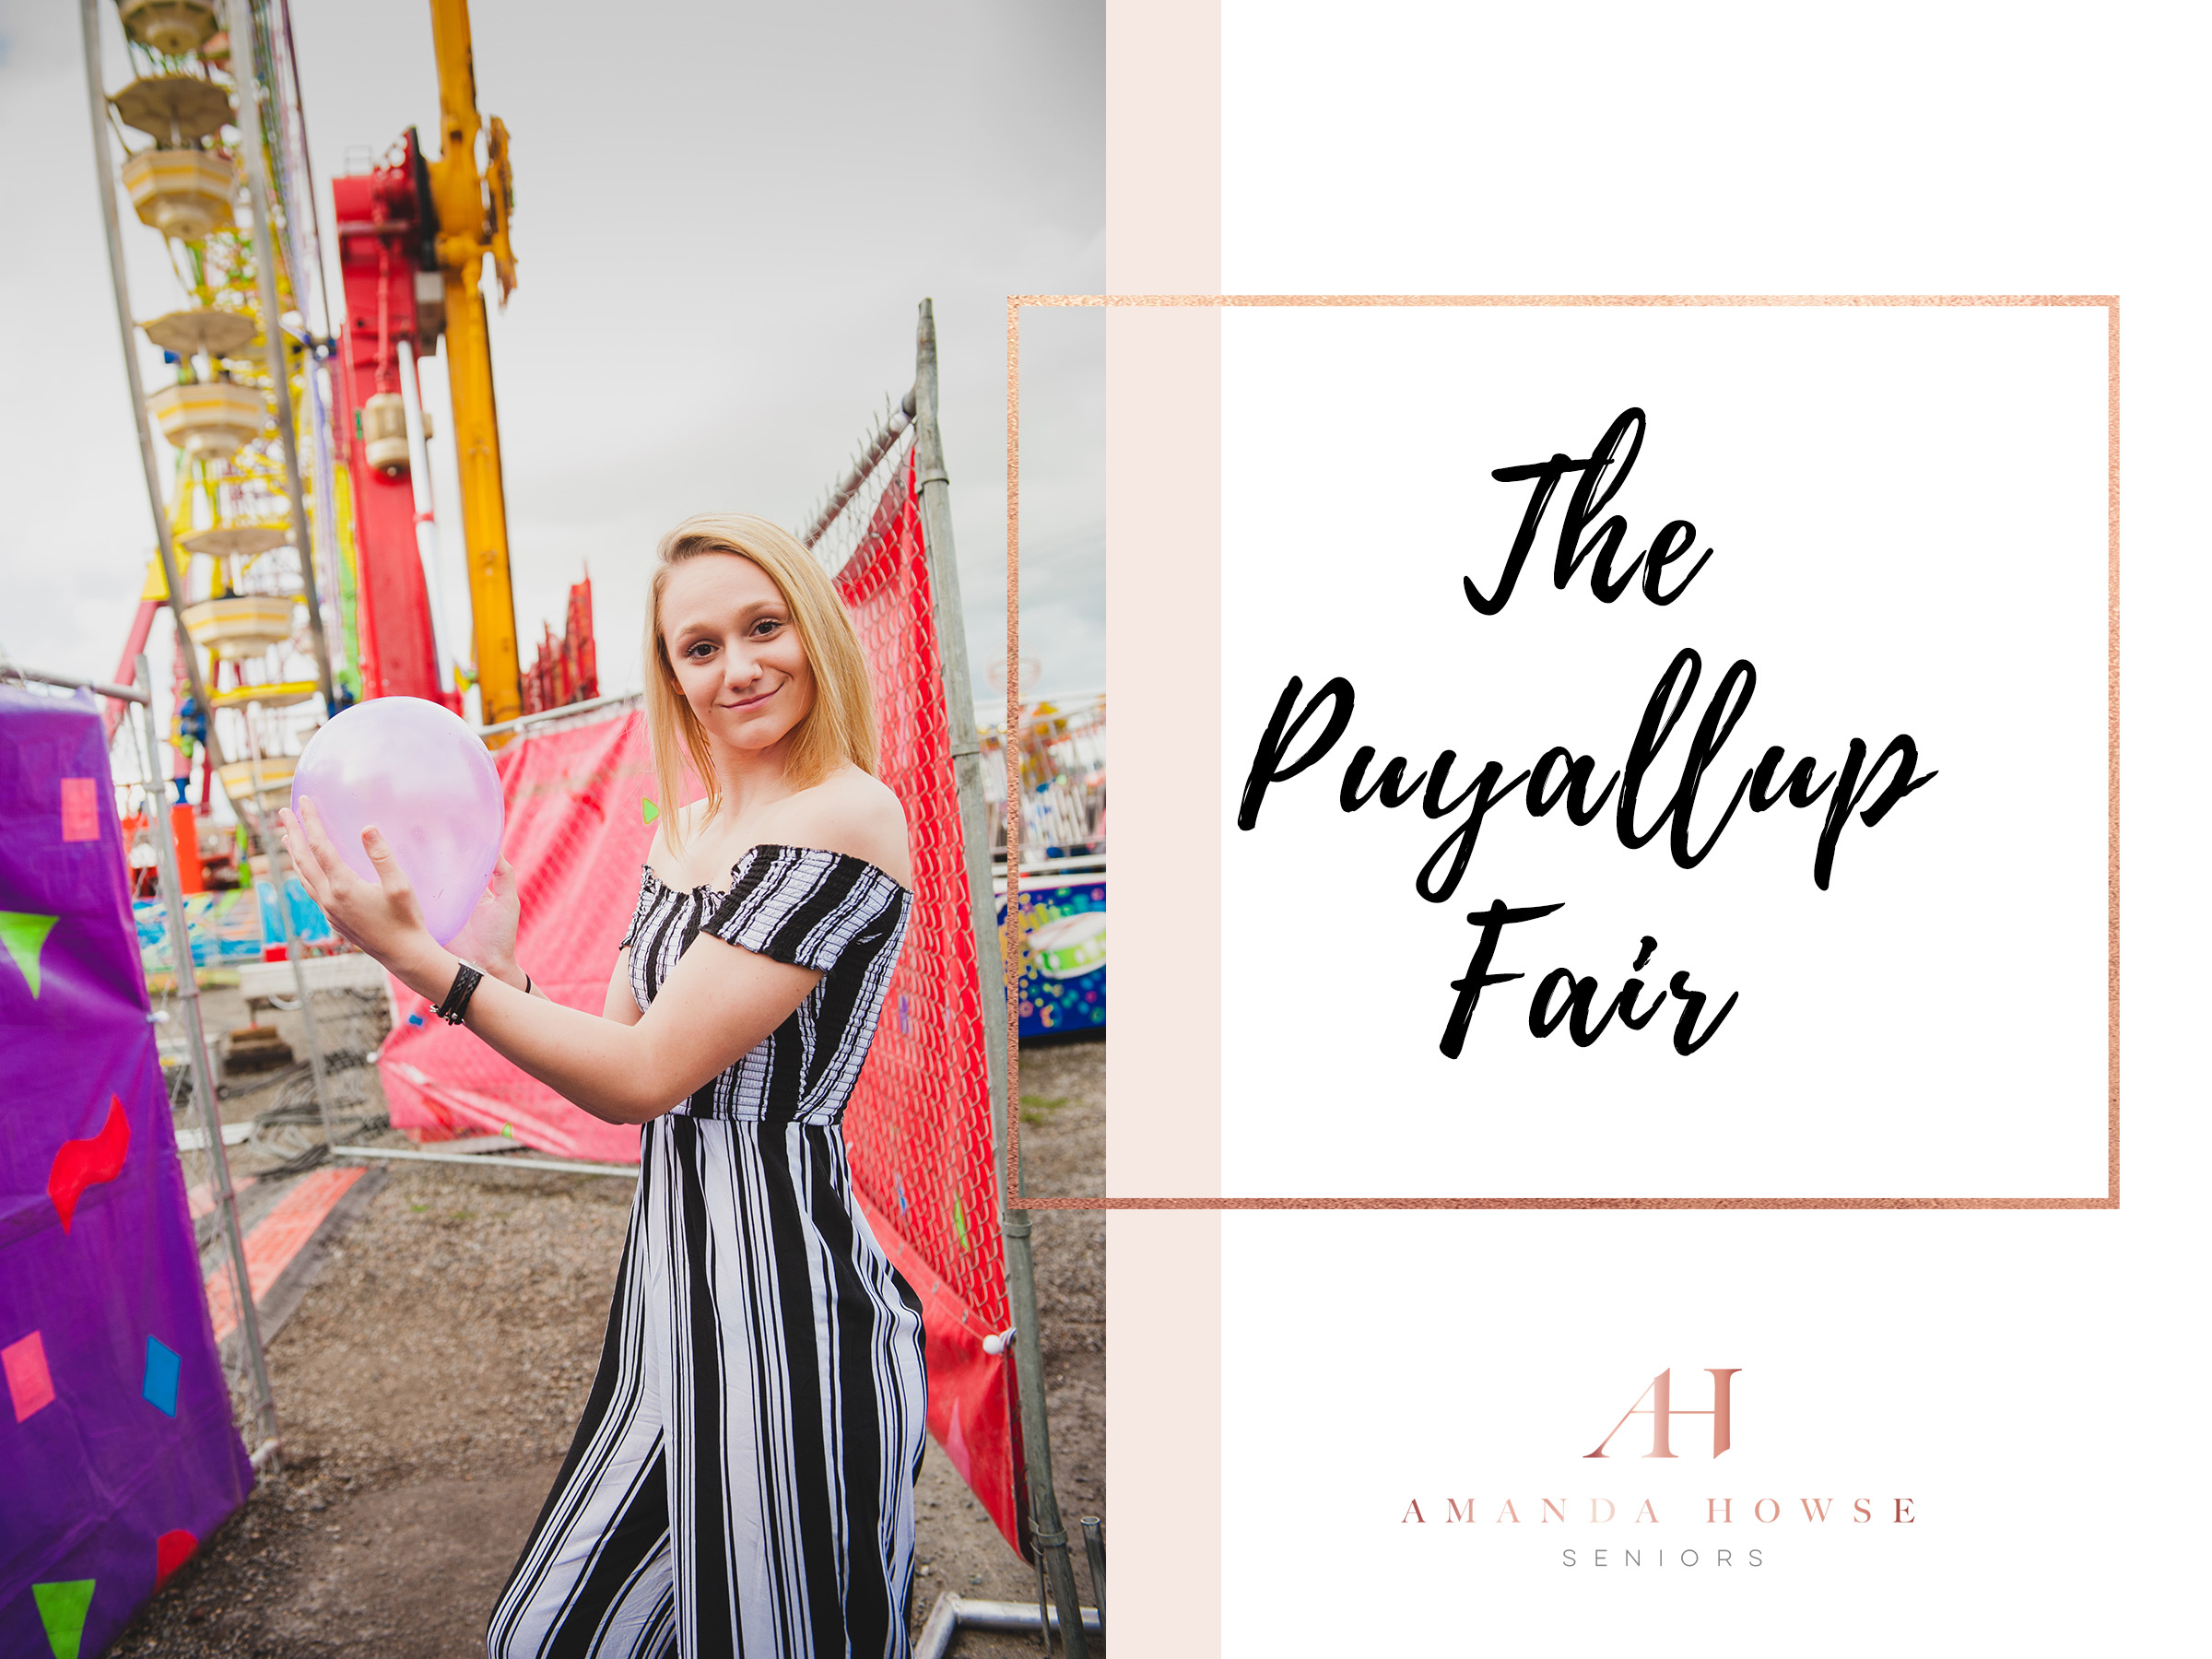 Senior Portraits at the Puyallup Fair | AHP Model Team Shoot with Amanda Howse